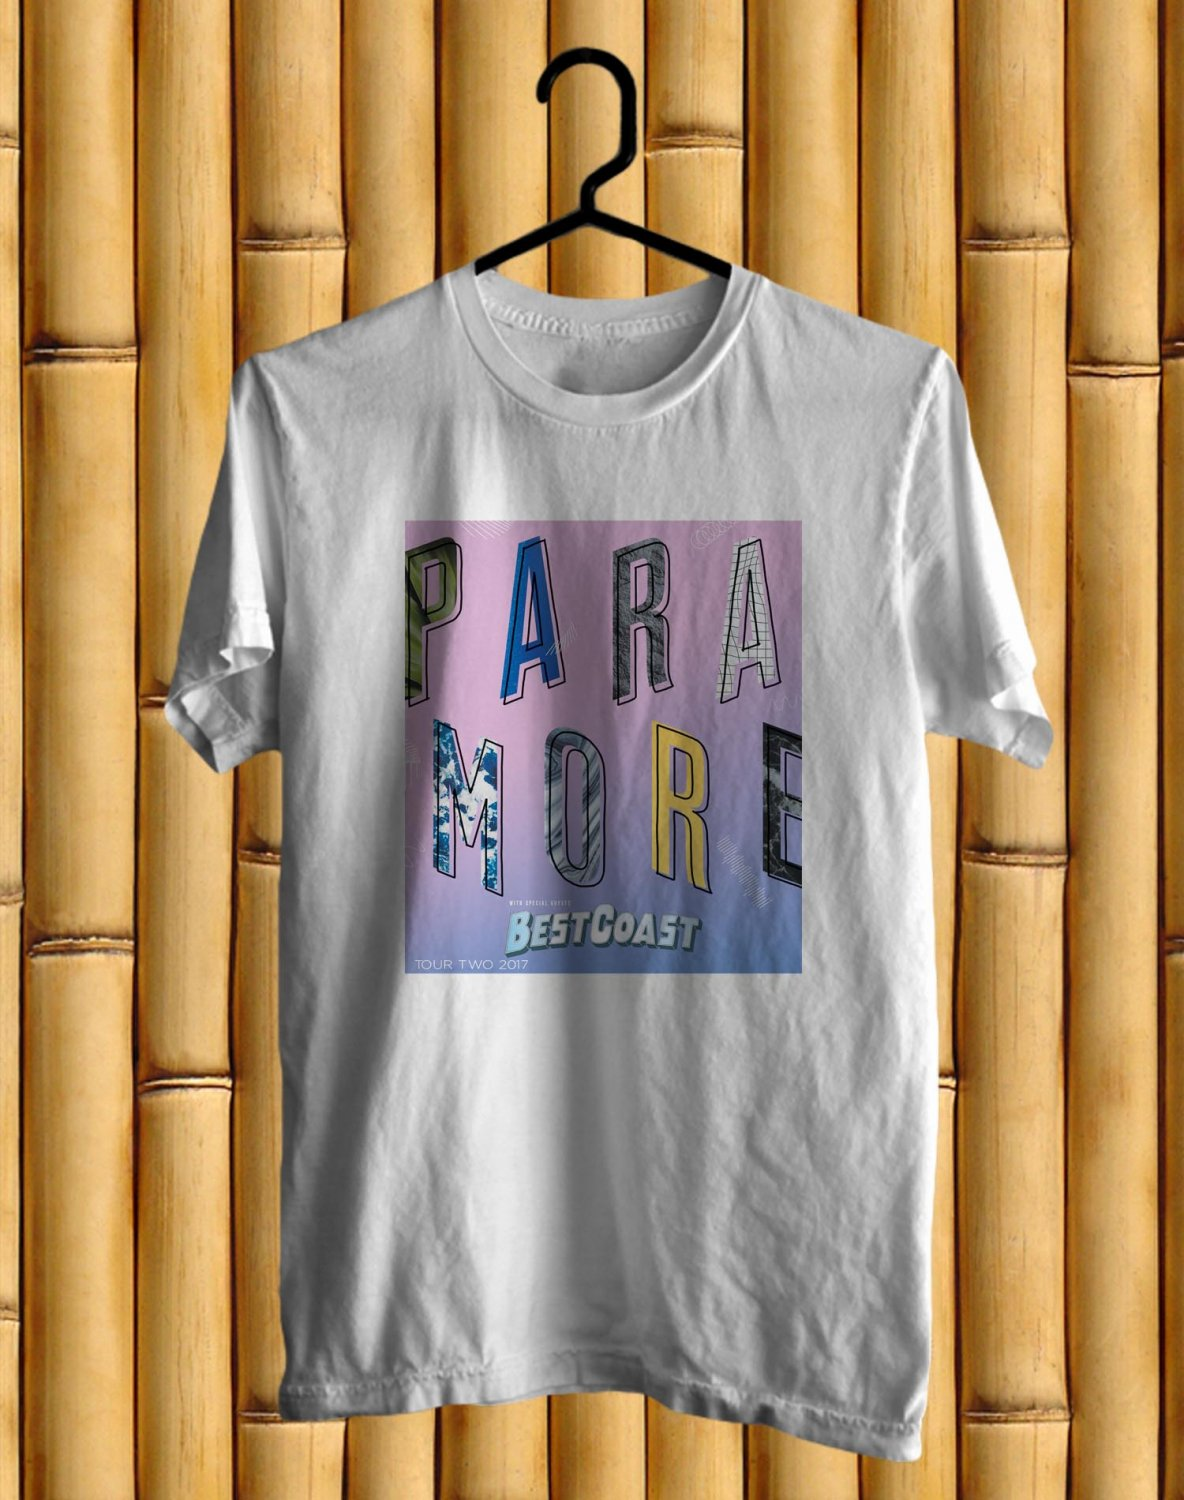 Paramore After Laughter New Album Tour 2017 White Tee's Front Side by Complexart z1